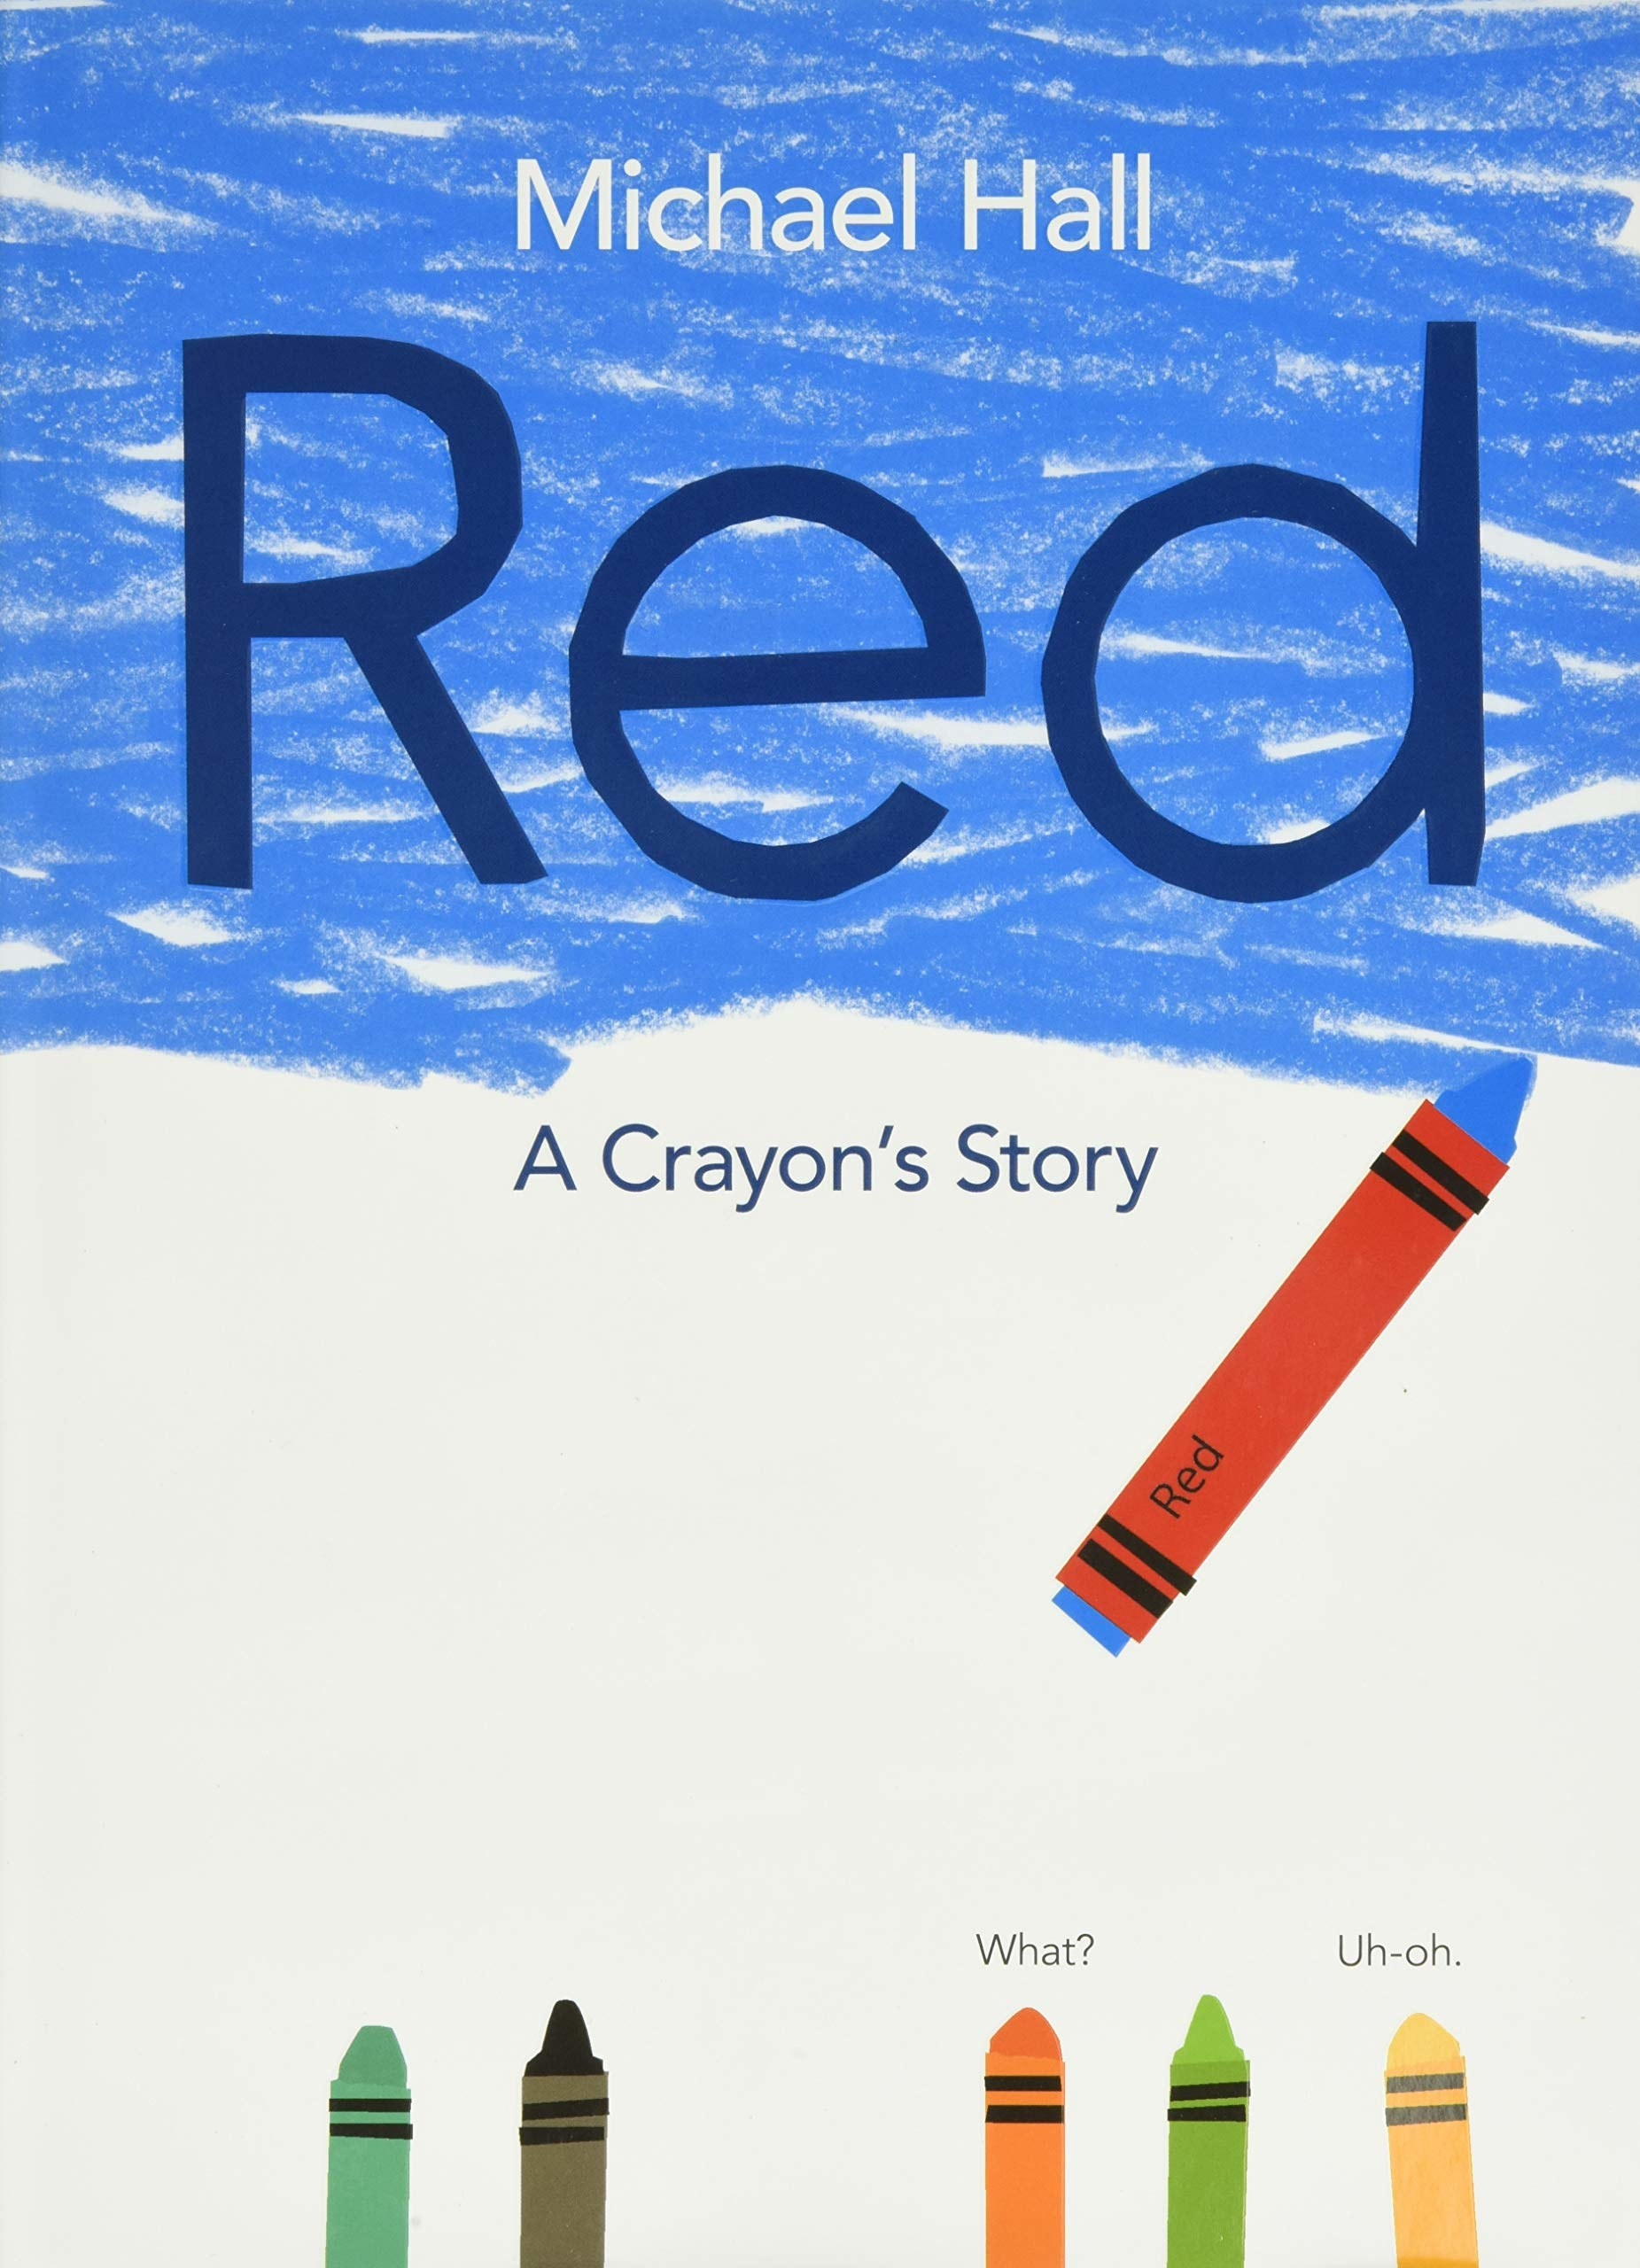 A blue crayon with a red wrapper over it